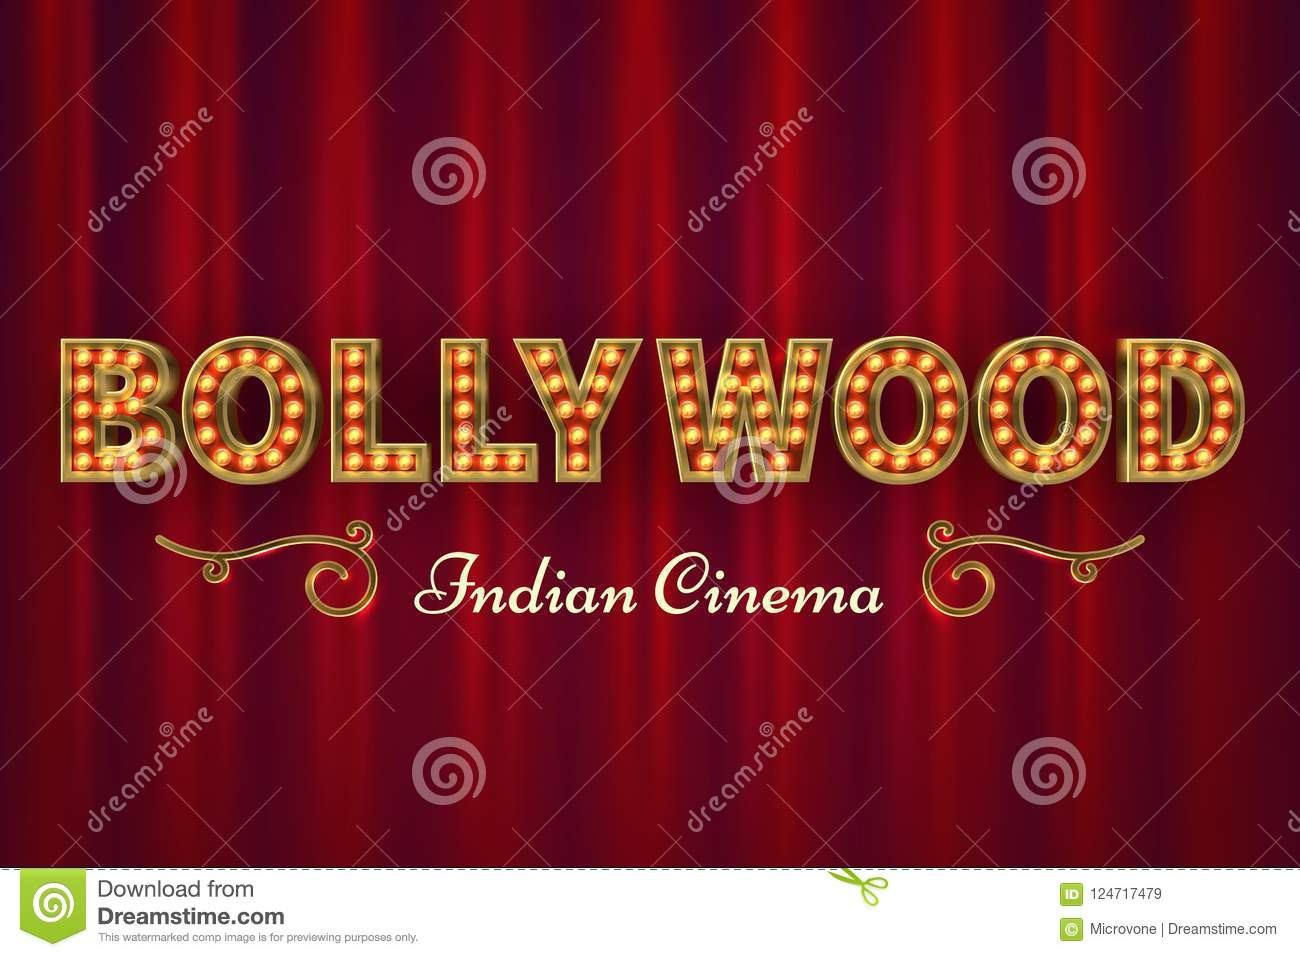 Bollywood Movie Poster Background